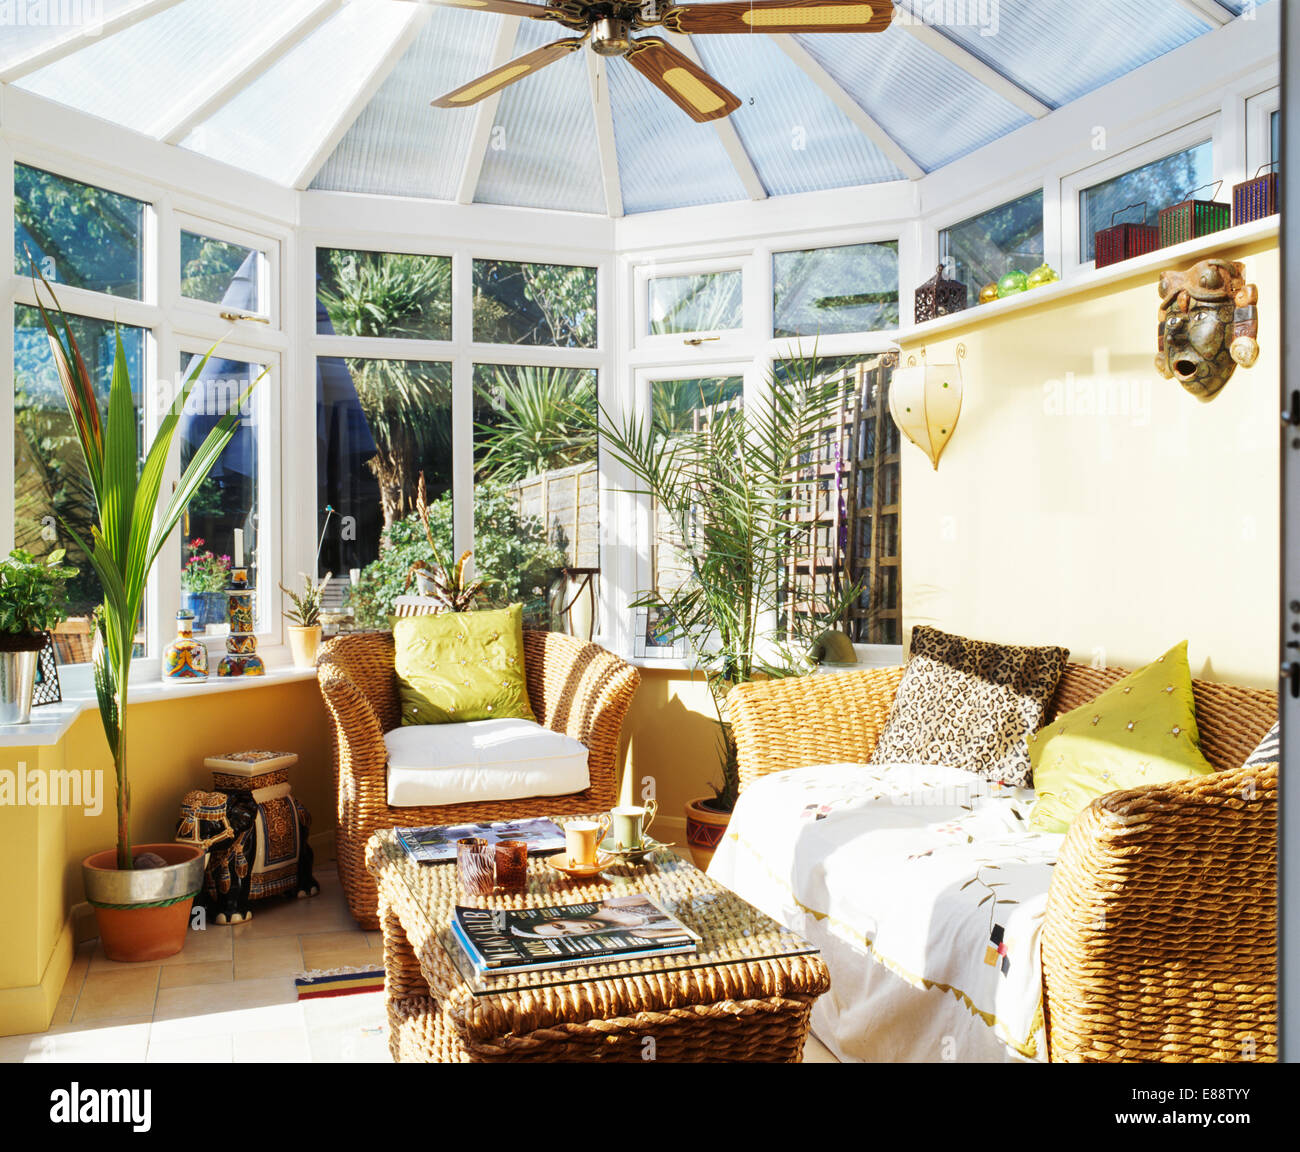 Picture of: Lime Green Cushions On Wicker Sofa And Armchair In Conservatory Stock Photo Alamy